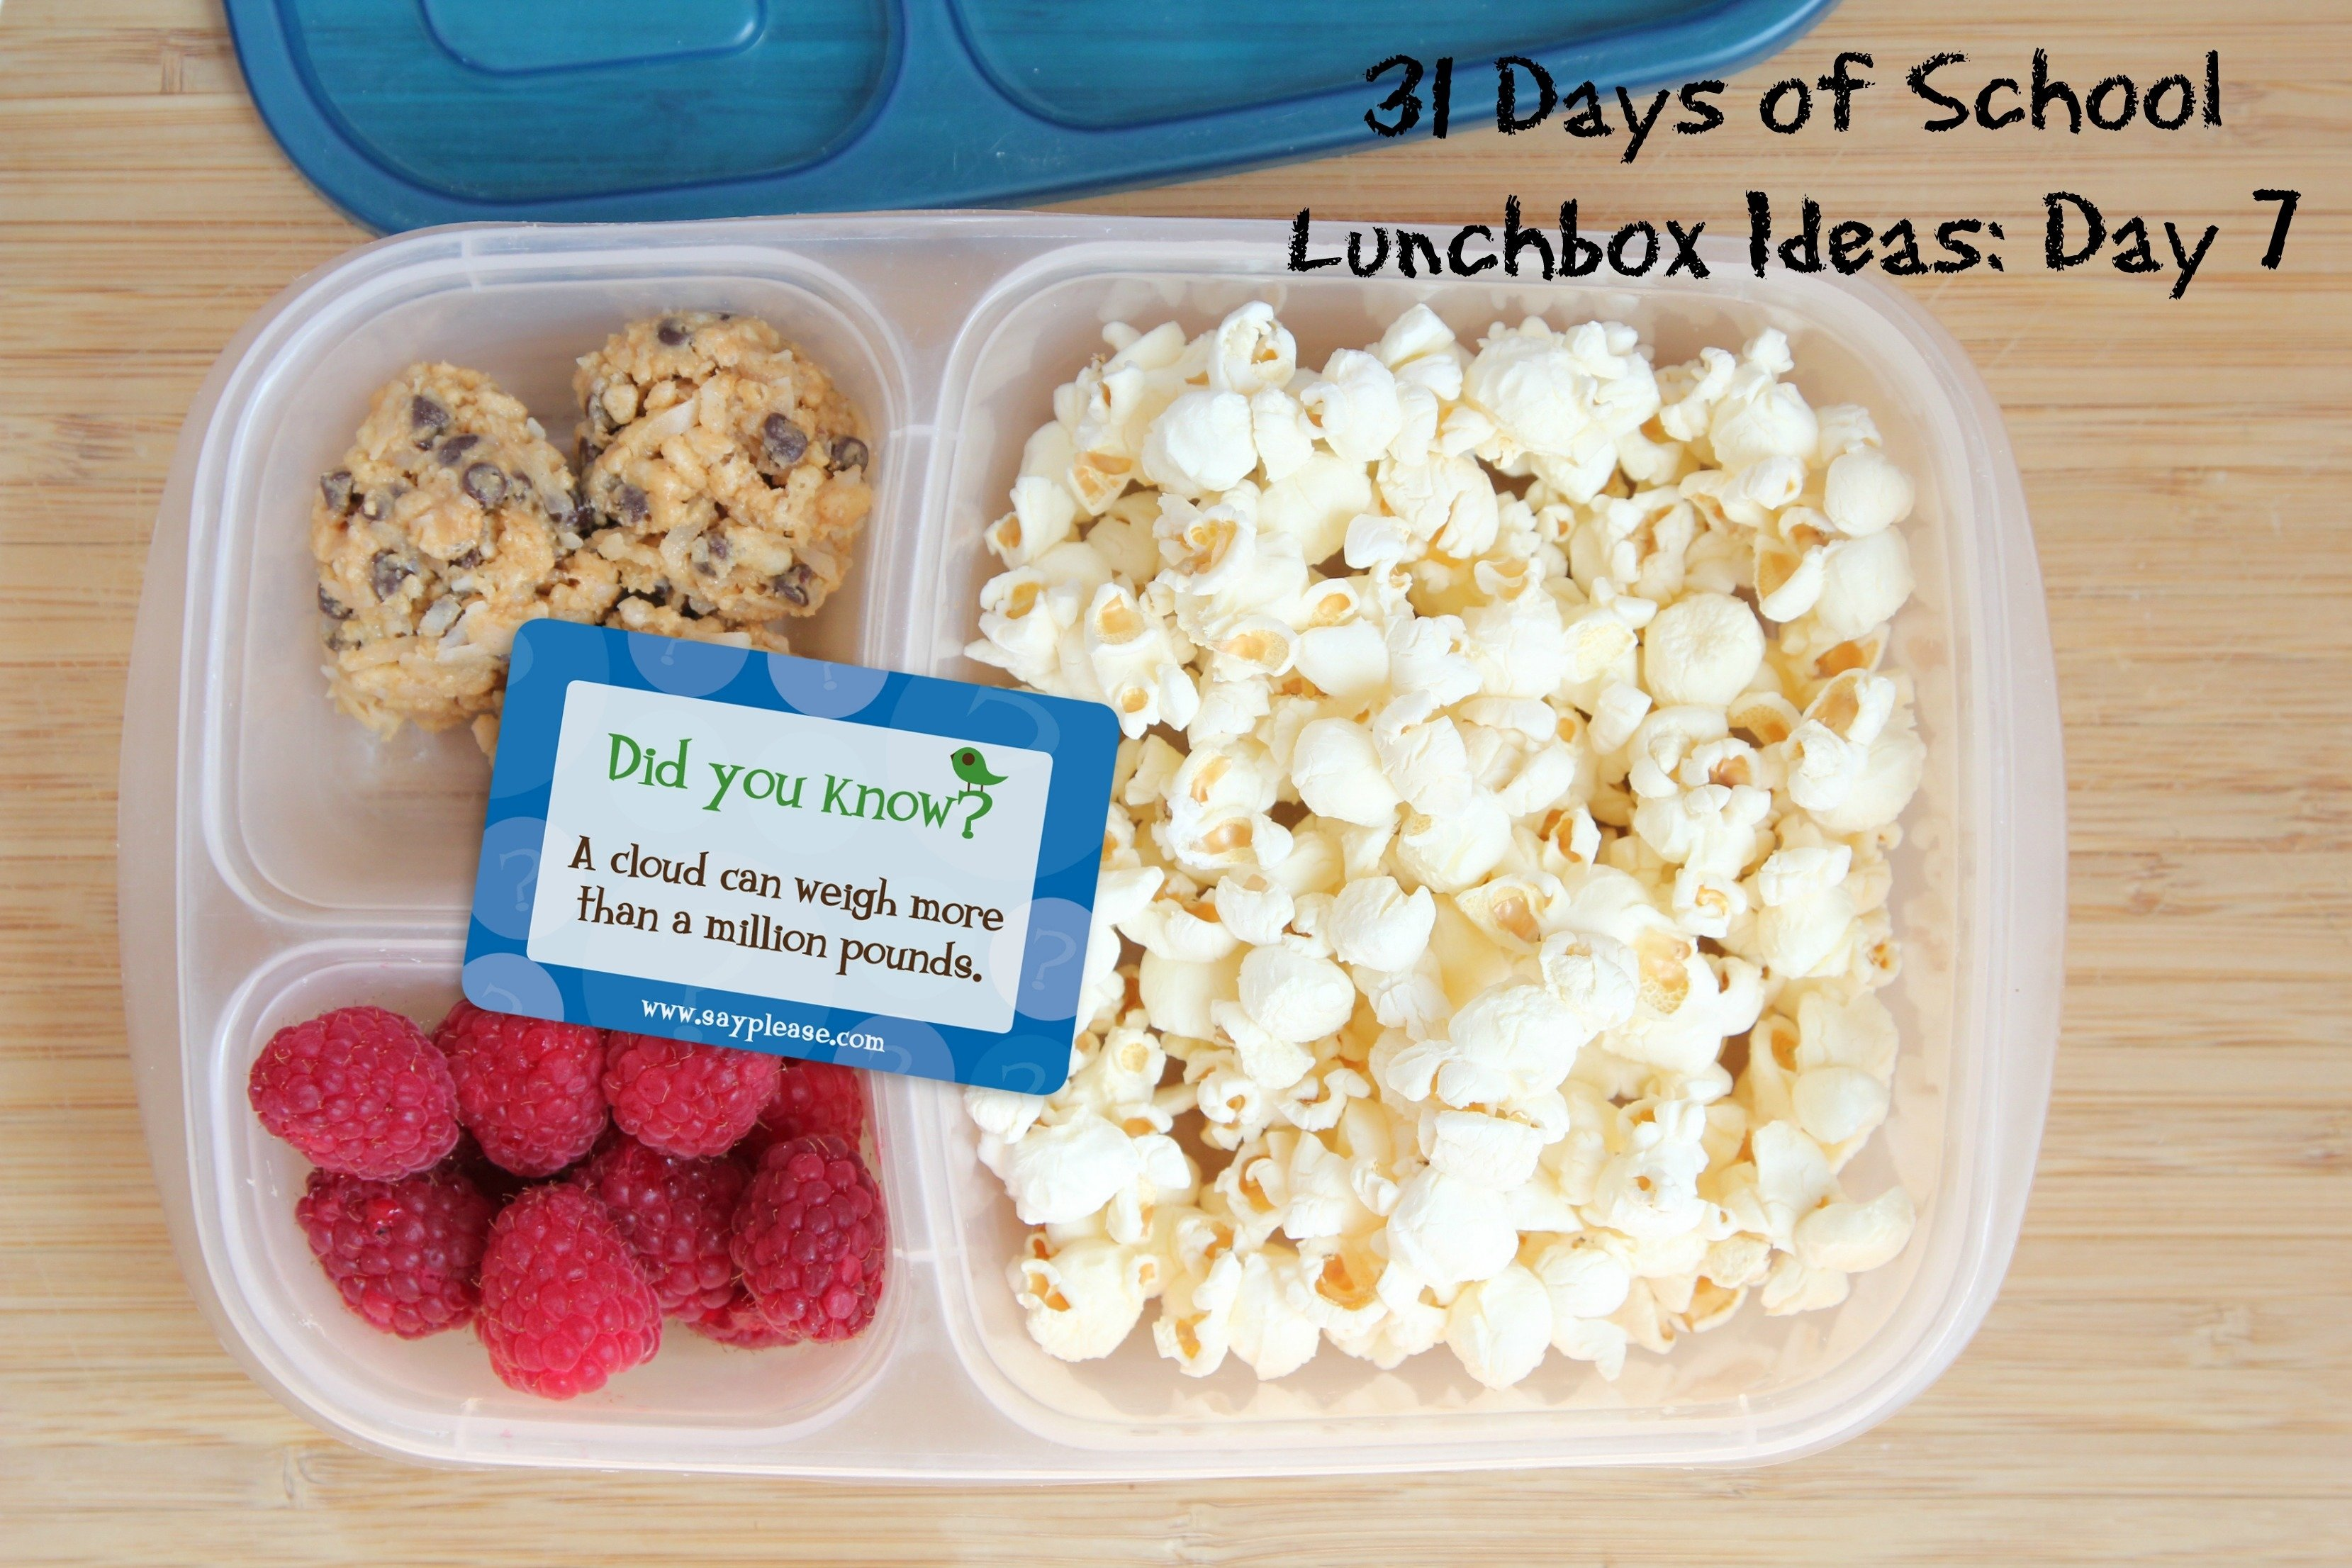 10 Awesome Food Day At Work Ideas 31 days of school lunchbox ideas day 7 2020